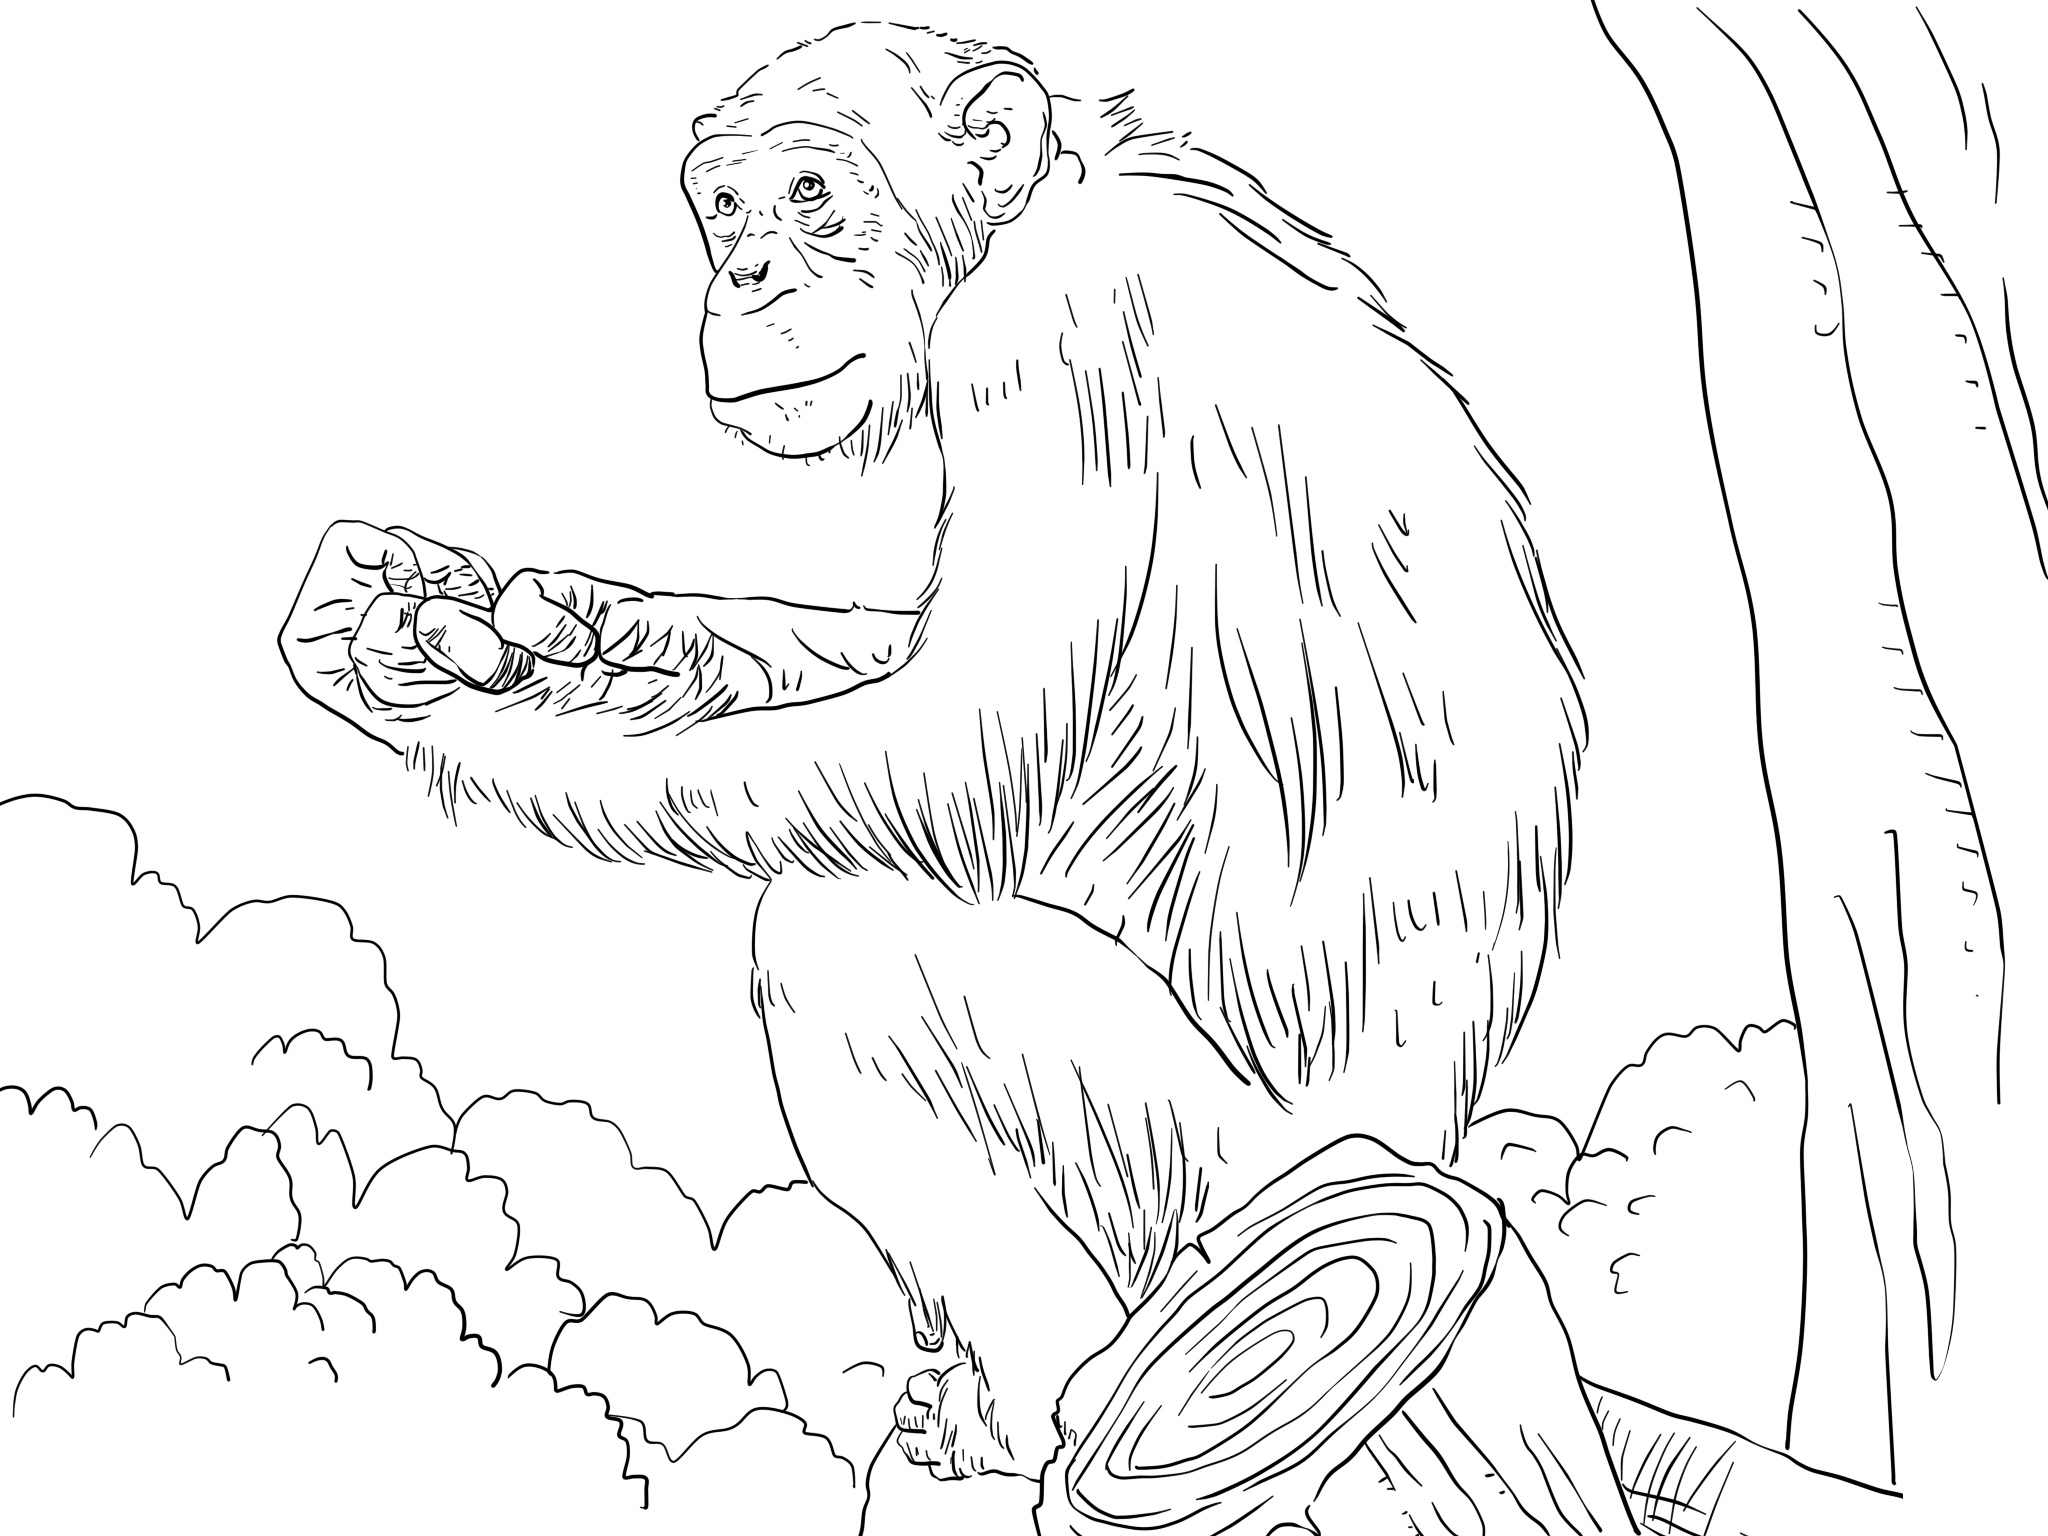 Free Printable Chimpanzee Coloring Pages For Kids Free Coloring Pages To Print